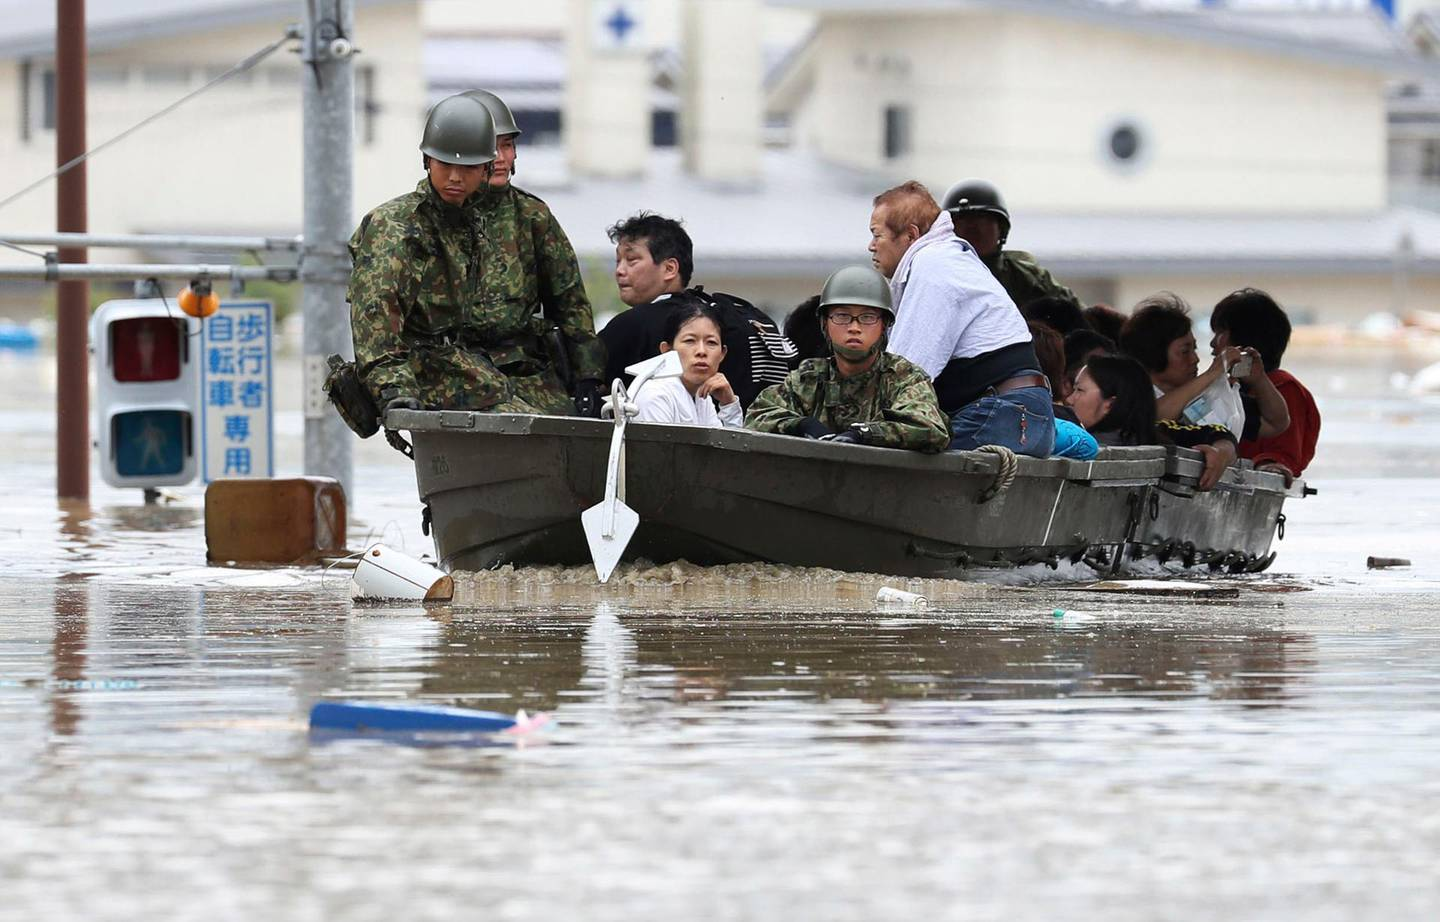 Japan Ground Self-Defense Force members use a boat to evacuate residents from a flooded area caused by heavy rains in Kurashiki, Okayama prefecture, southwestern Japan, Saturday, July 7, 2018. Torrents of rainfall and flooding continued to batter southwestern Japan. (Takumi Sato/Kyodo News via AP)